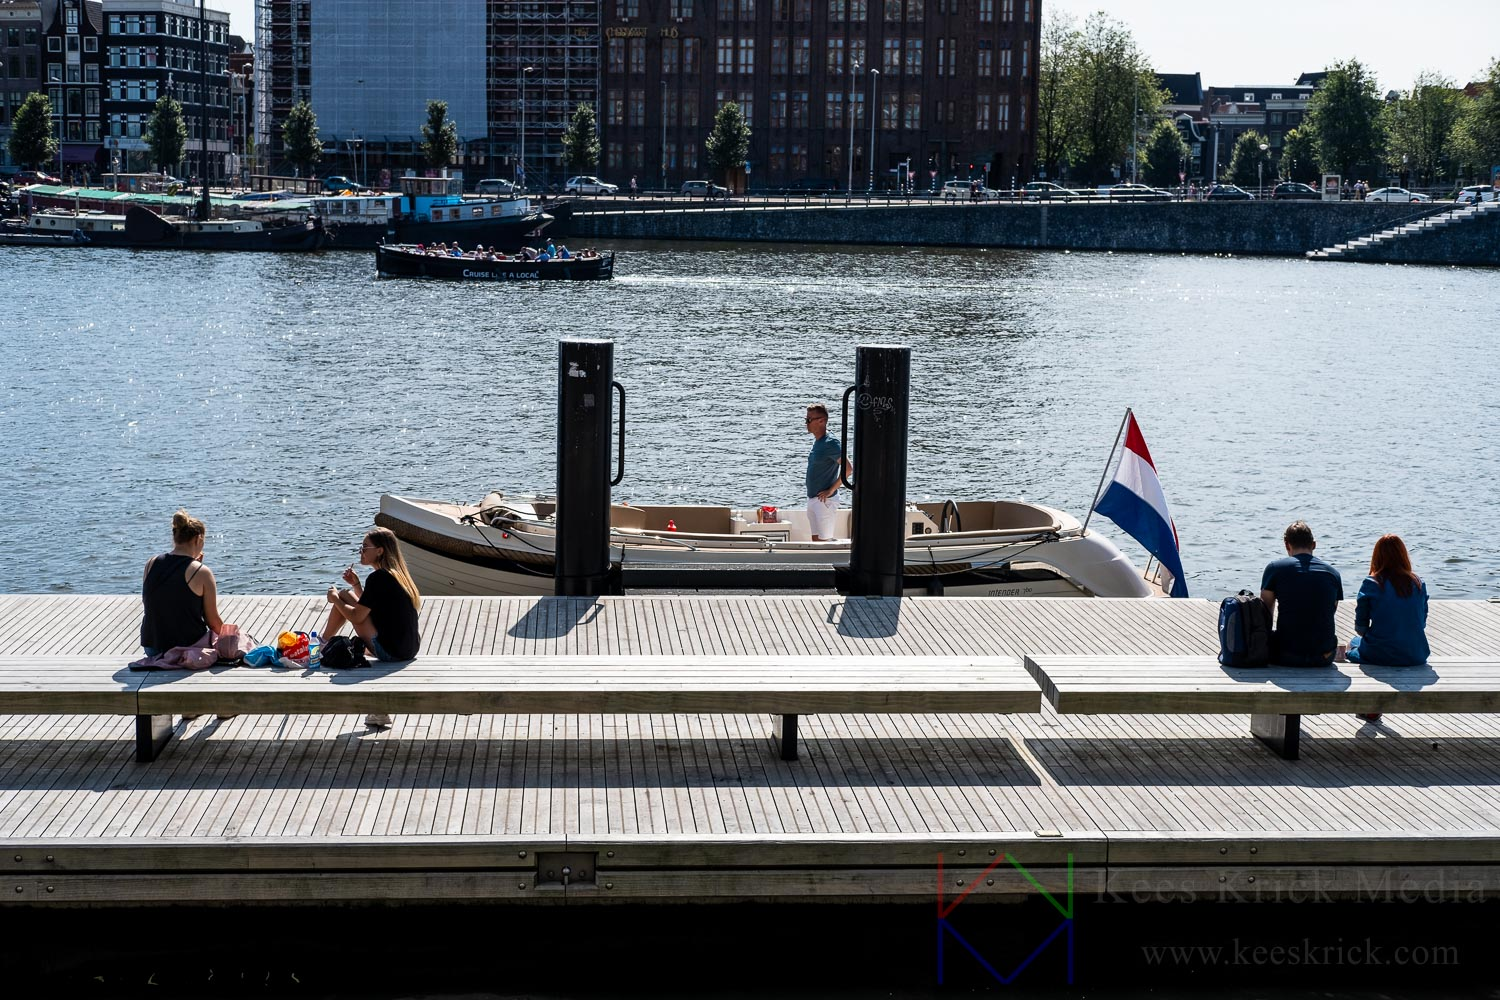 Amsterdam - Centraal Station  - Oosterdok